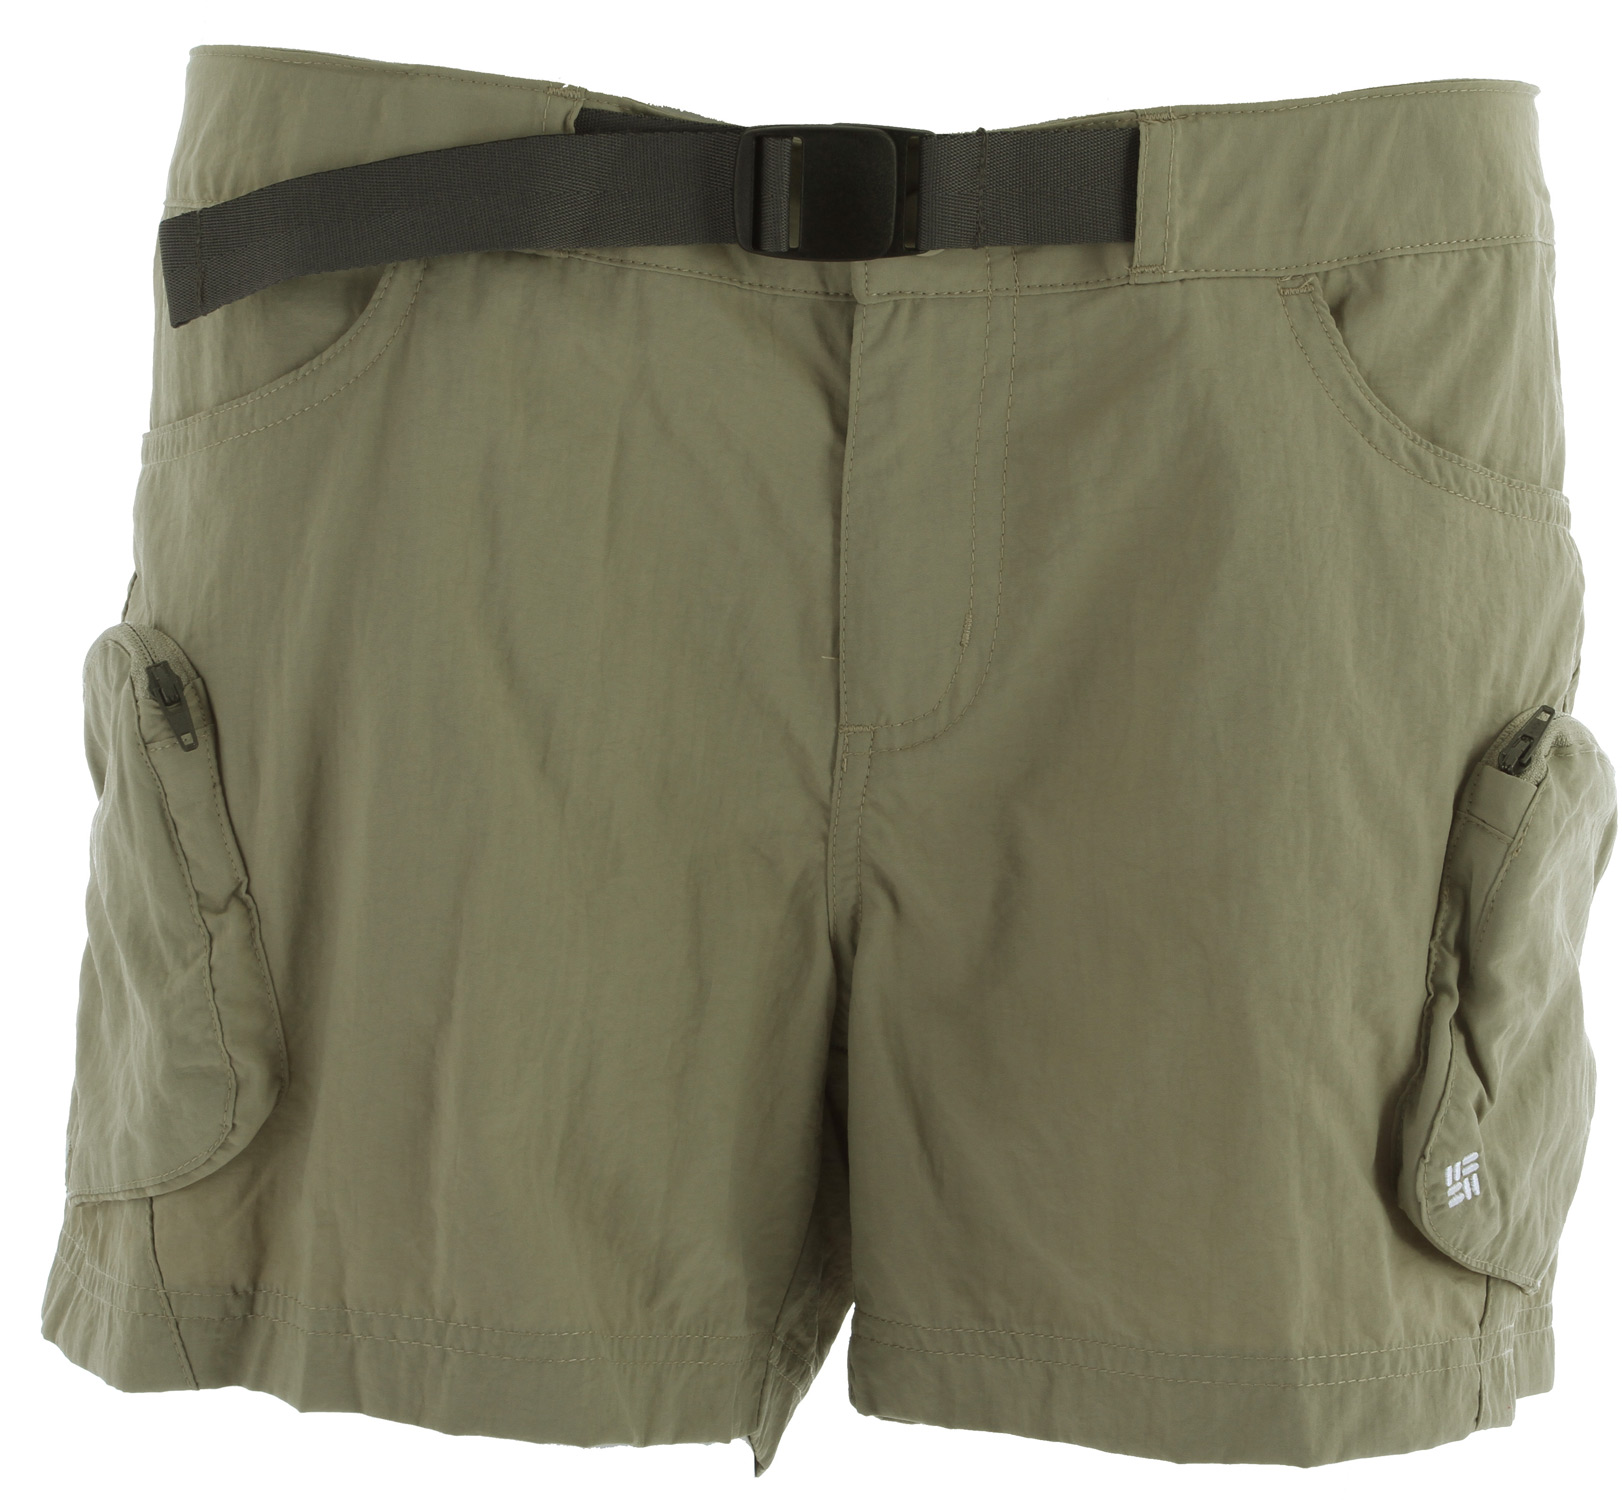 Key Features of the Columbia Cross On Over Cargo Shorts: 100% Supplex® nylon woven Omni-Wick™ Active fit, mid rise Exterior adjustable waistband Zip-closed security pockets - $23.95